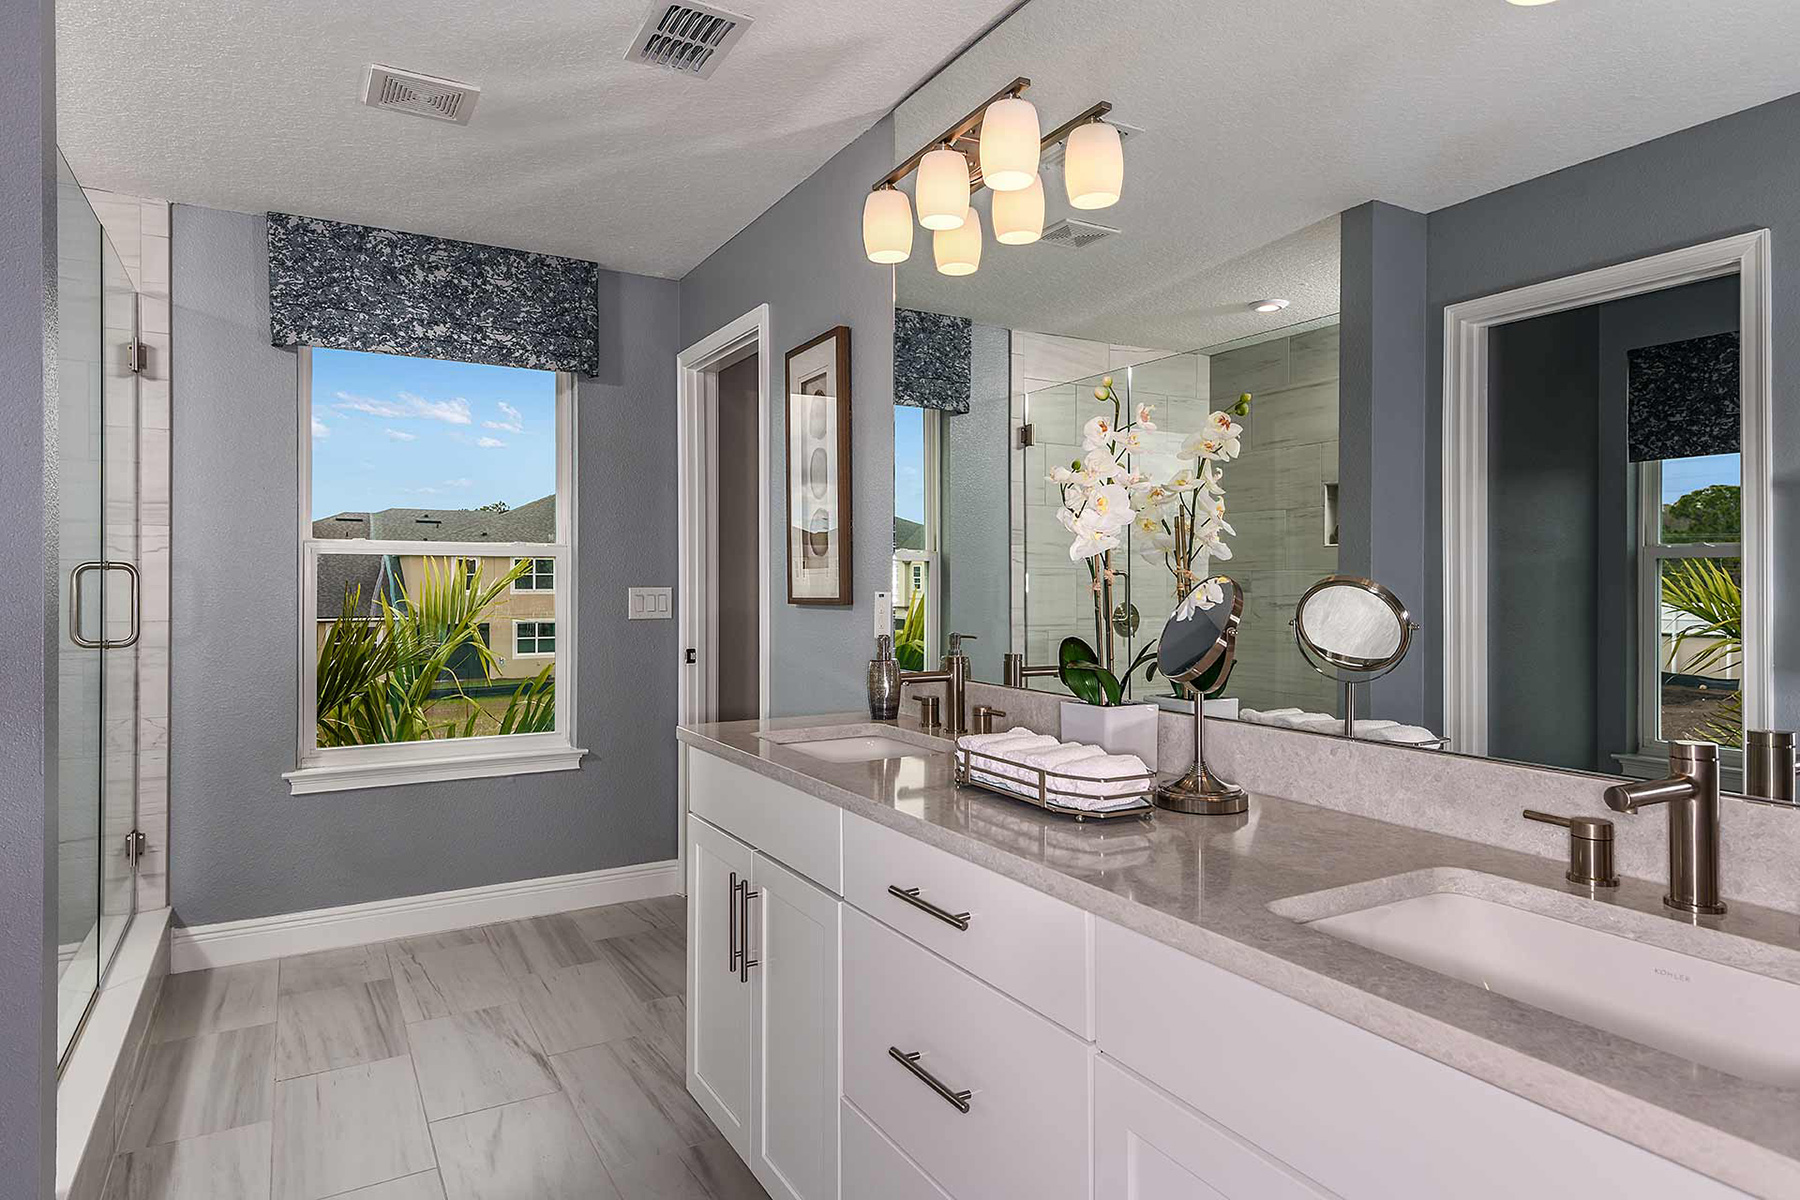 Venice Plan Bath at Avea Pointe in Lutz Florida by Mattamy Homes